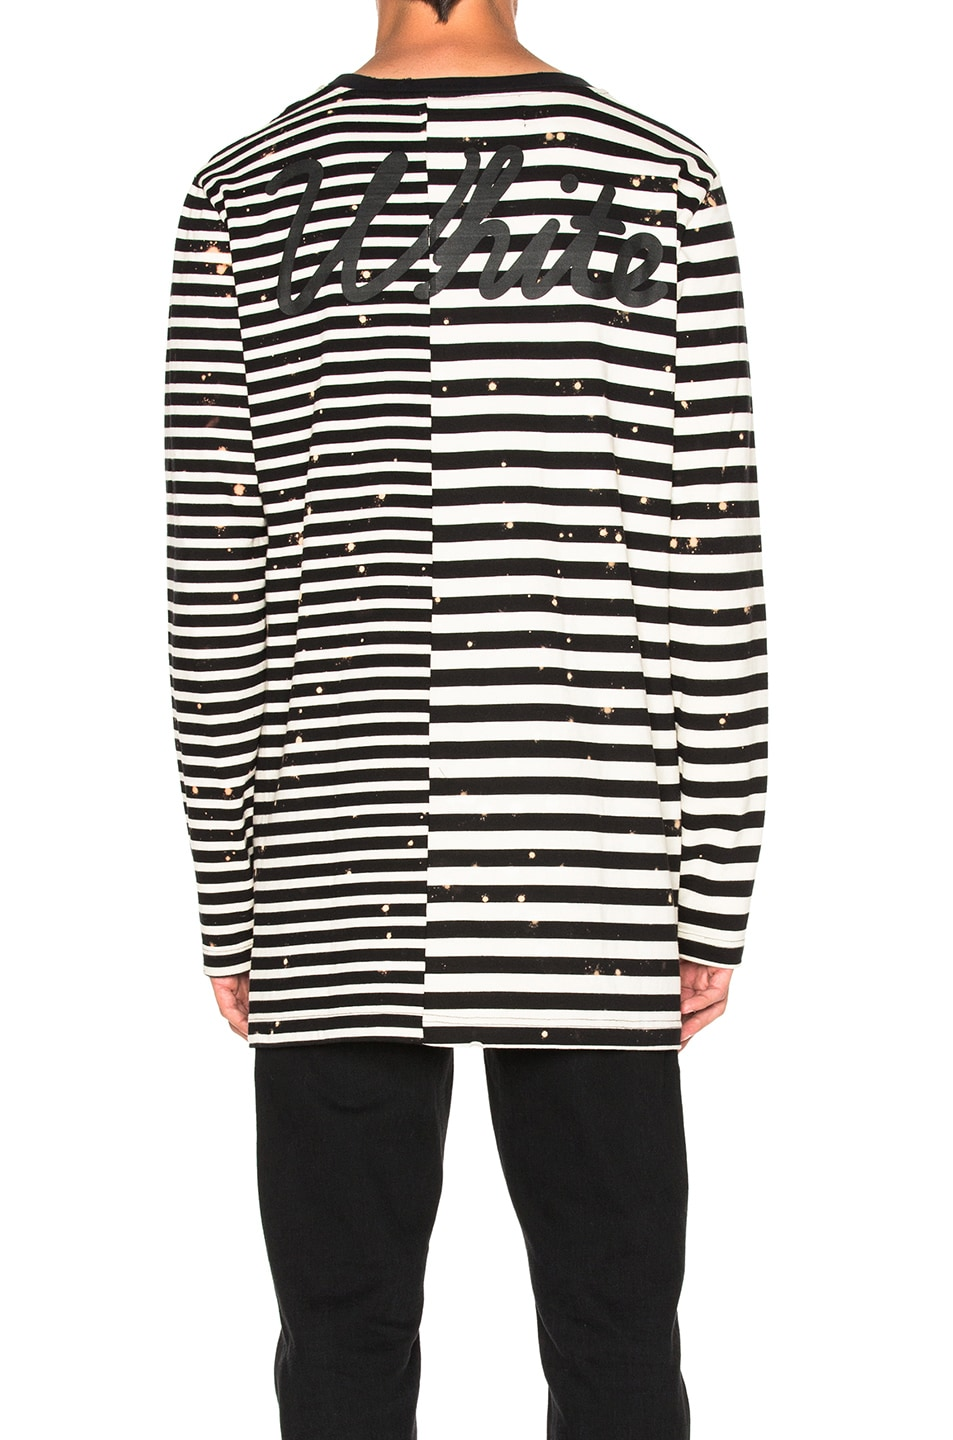 a5563fdc85ba Image 5 of OFF-WHITE Striped Long Sleeve Tee in White   Black